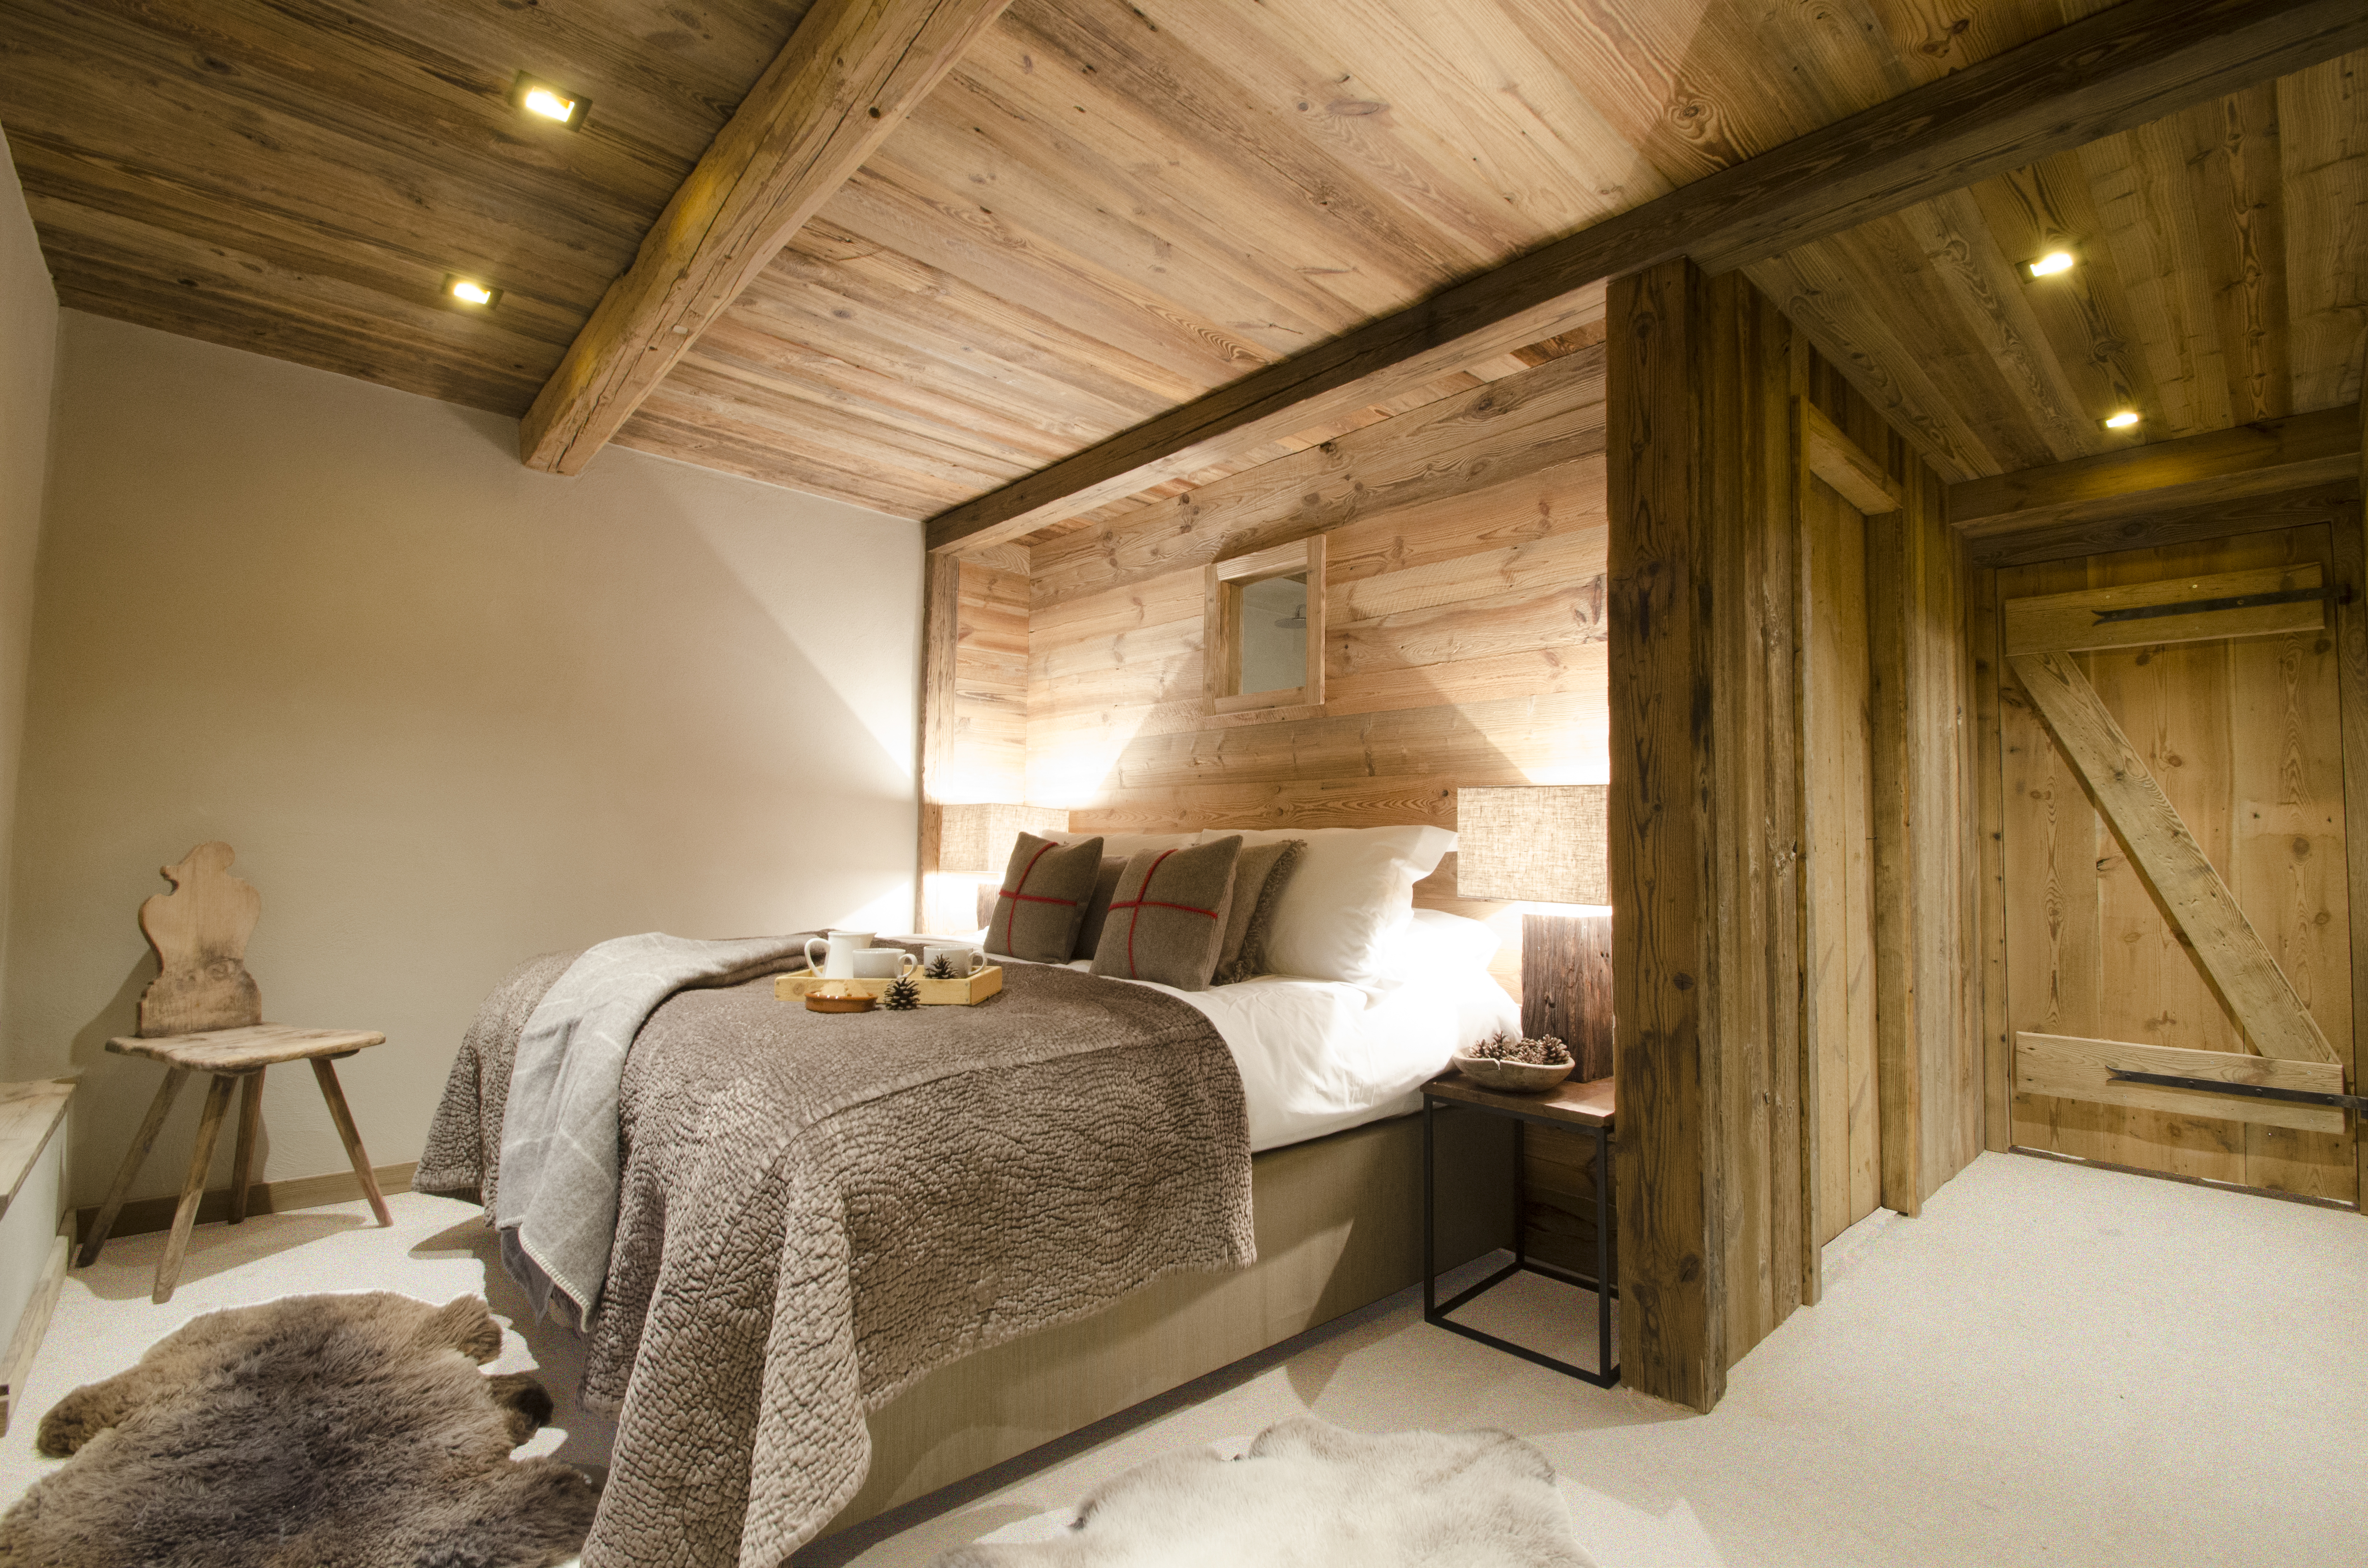 Ancient Timber On The Walls U0026 Ceiling Create A Cosy, Cabin Style Bedroom